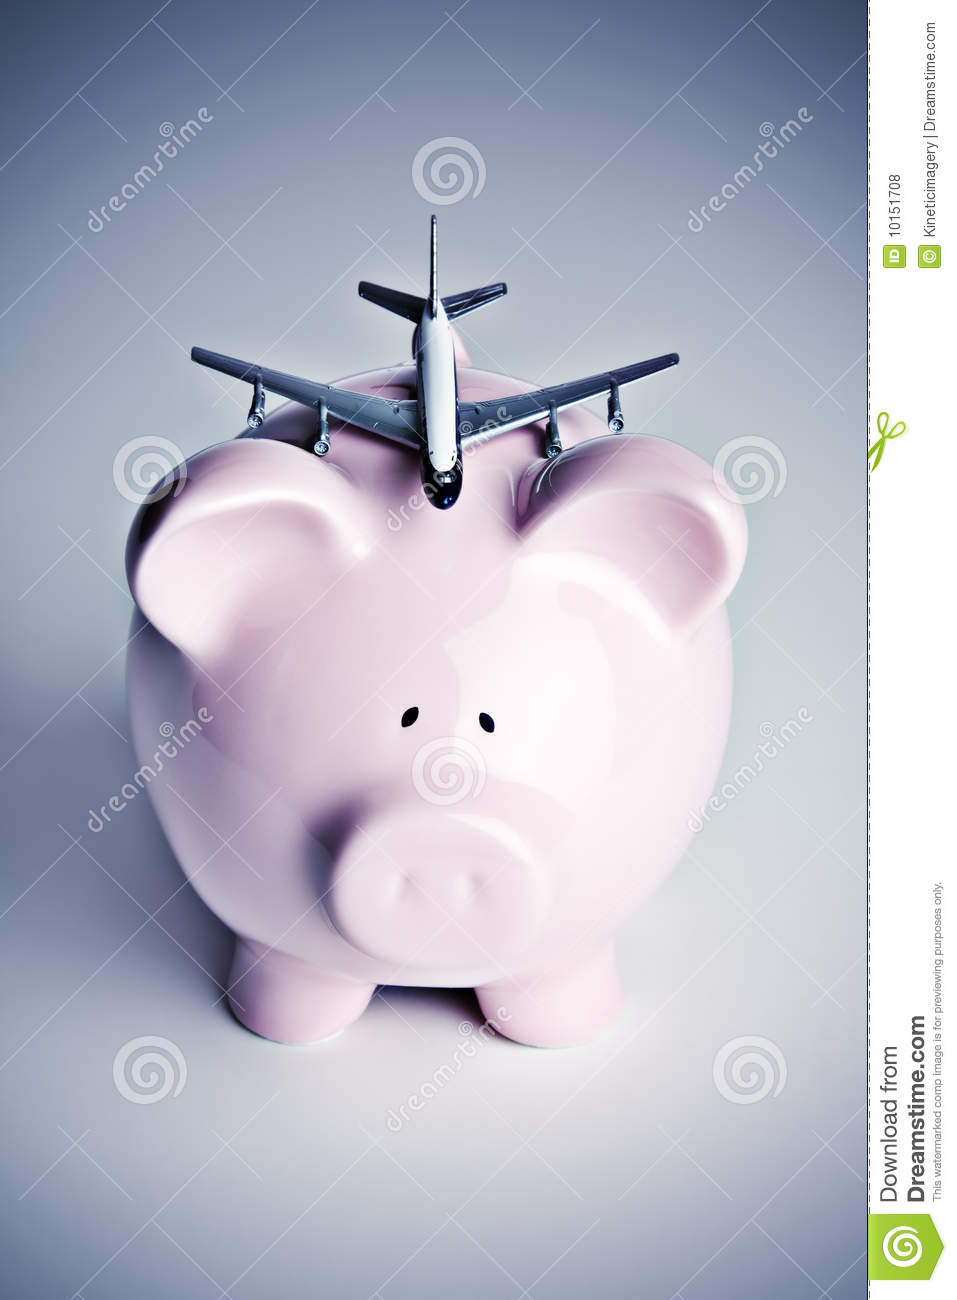 piggy bank with toy airplane royalty free stock photos  image  - airplane bank piggy